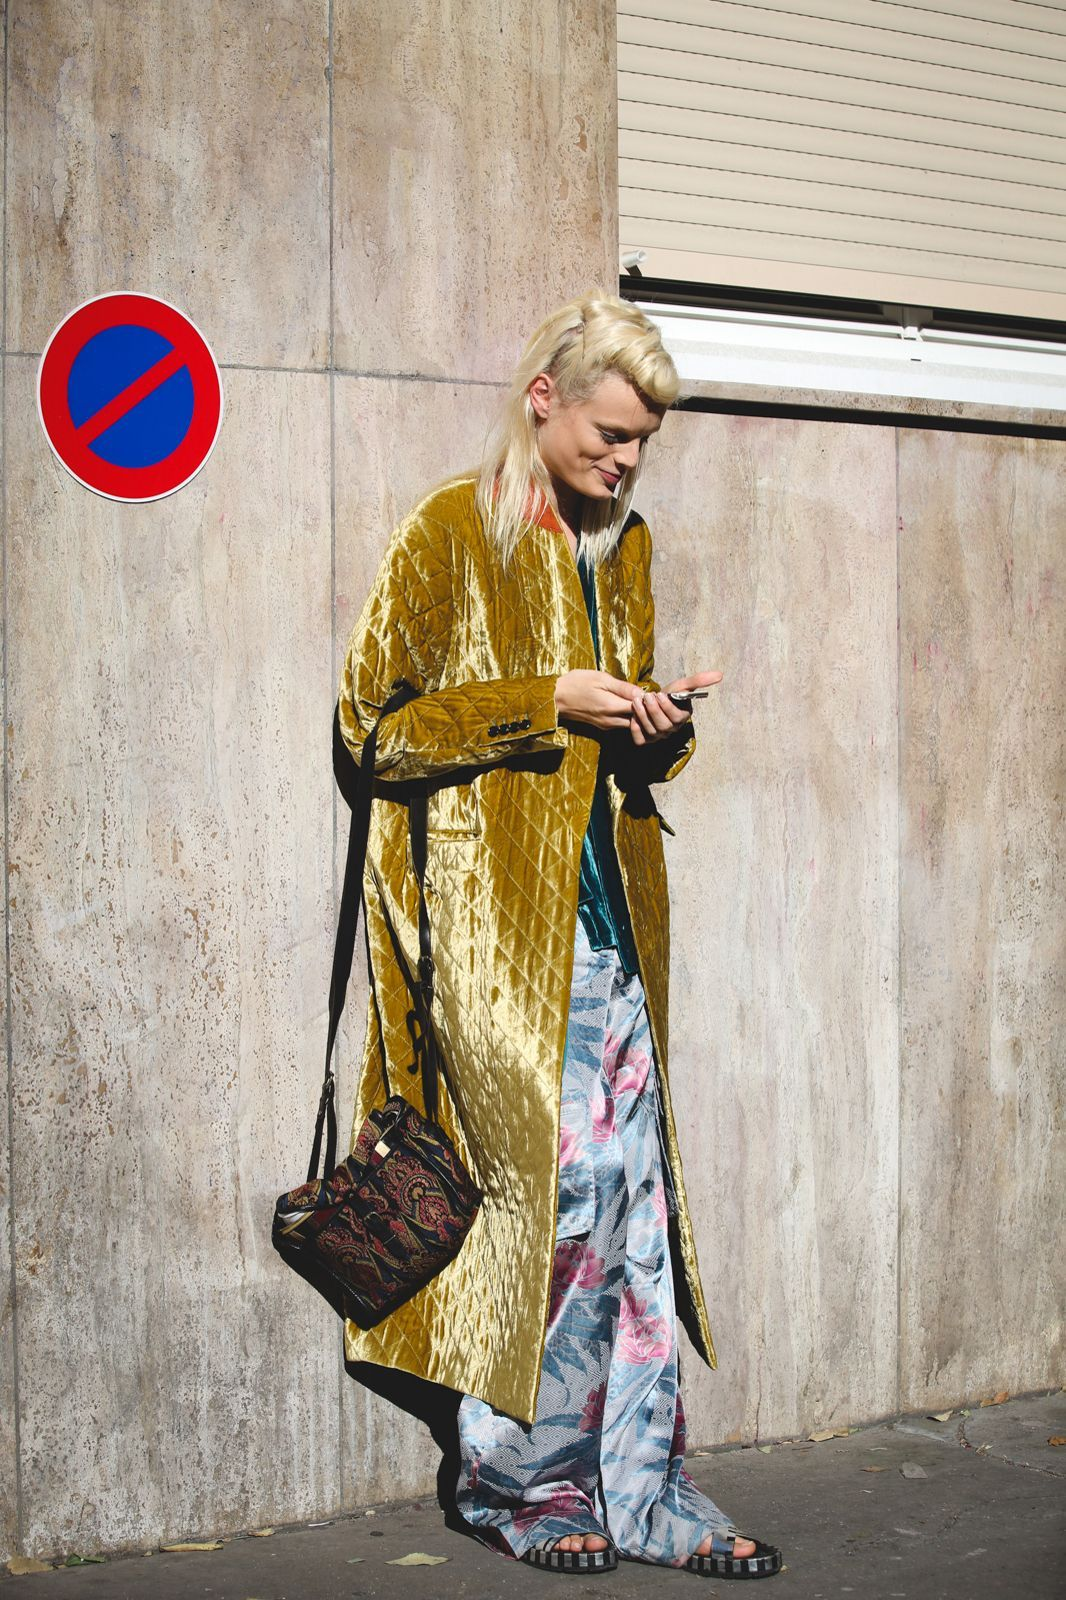 Every Must-See Street Style Look From Paris Fashion Week #refinery29 http://www.refinery29.com/2015/10/95202/paris-fashion-week-spring-2016-street-style-pictures#slide-26 No need to get your pants hemmed....